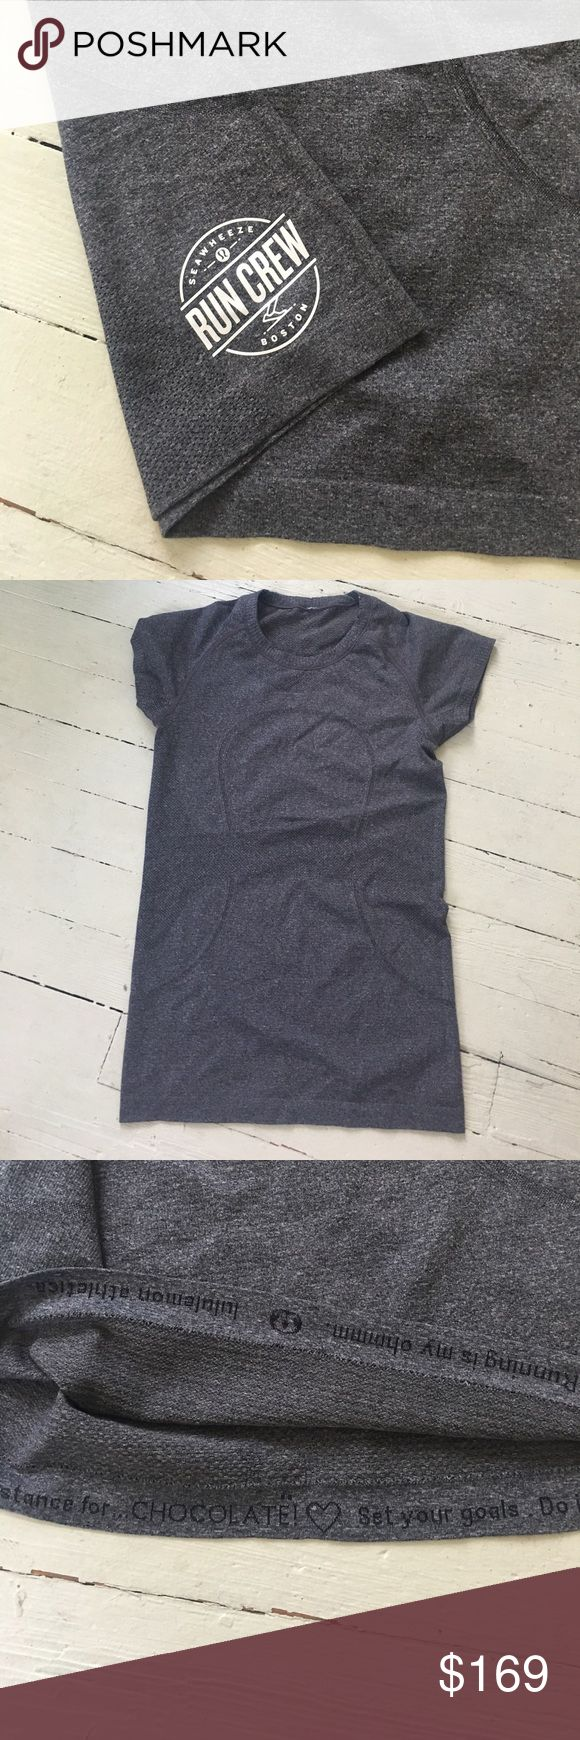 RARE limited edition Lululemon swiftly size 6 SUPER RARE from seawheeze run club in Boston - worn once in like new condition lululemon athletica Tops Tees - Short Sleeve